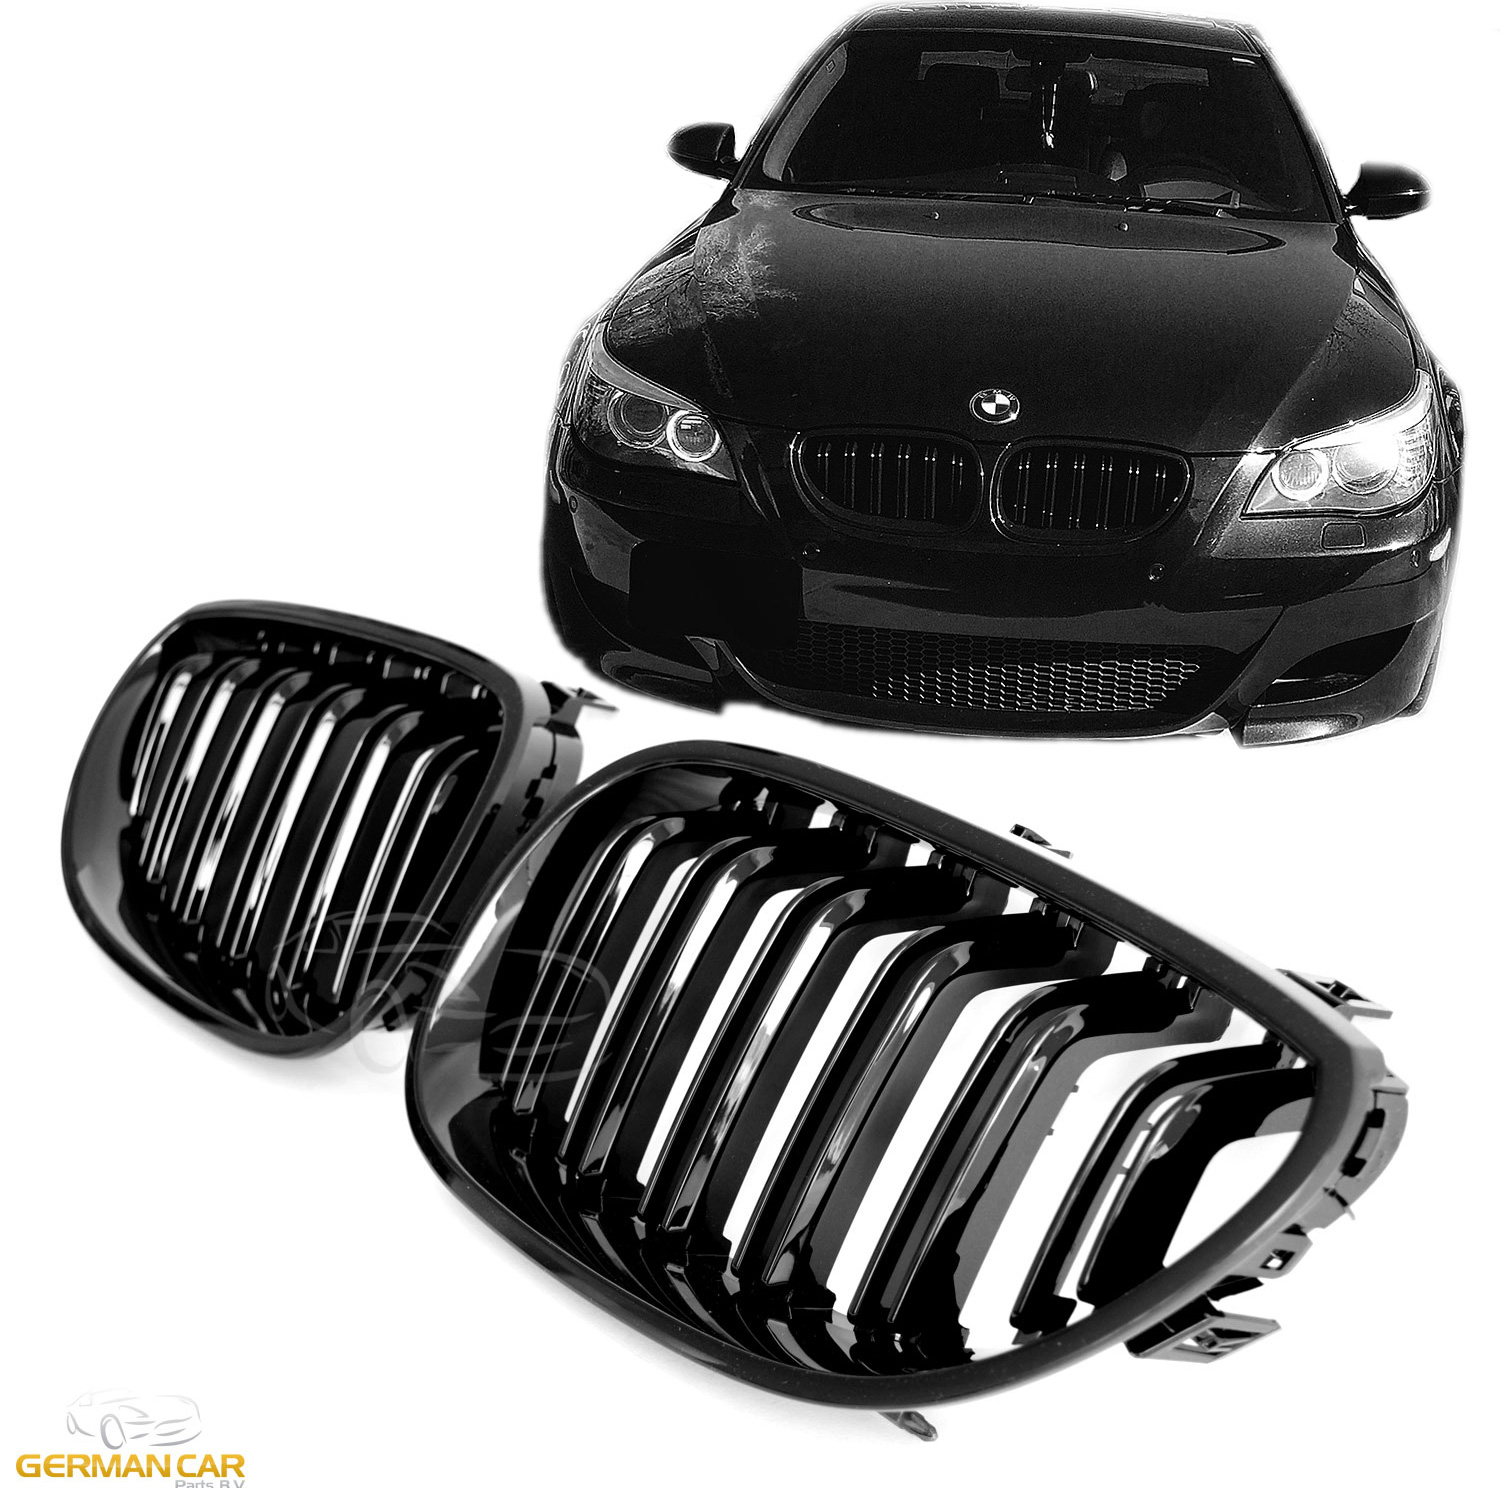 b95d2eb019 Details about GRILLE FOR BMW E60 E61 SPORT KIDNEY DOUBLE SLAT M5 LOOK GLOSS  BLACK